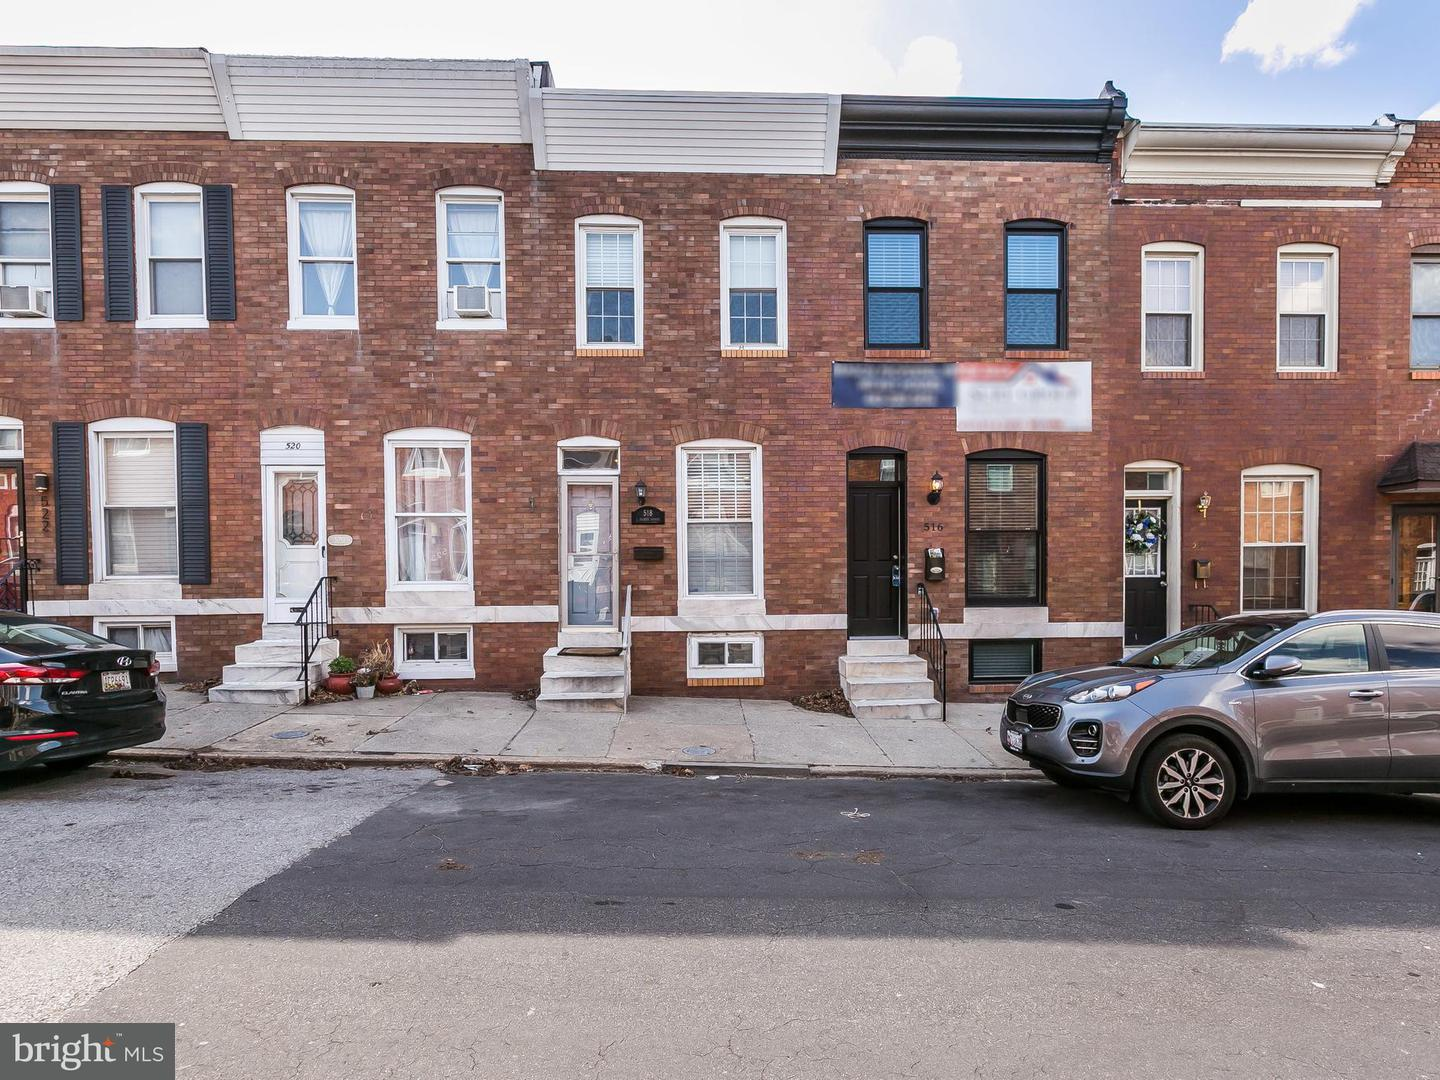 518 decker ave s baltimore md real estate listing mls g listing